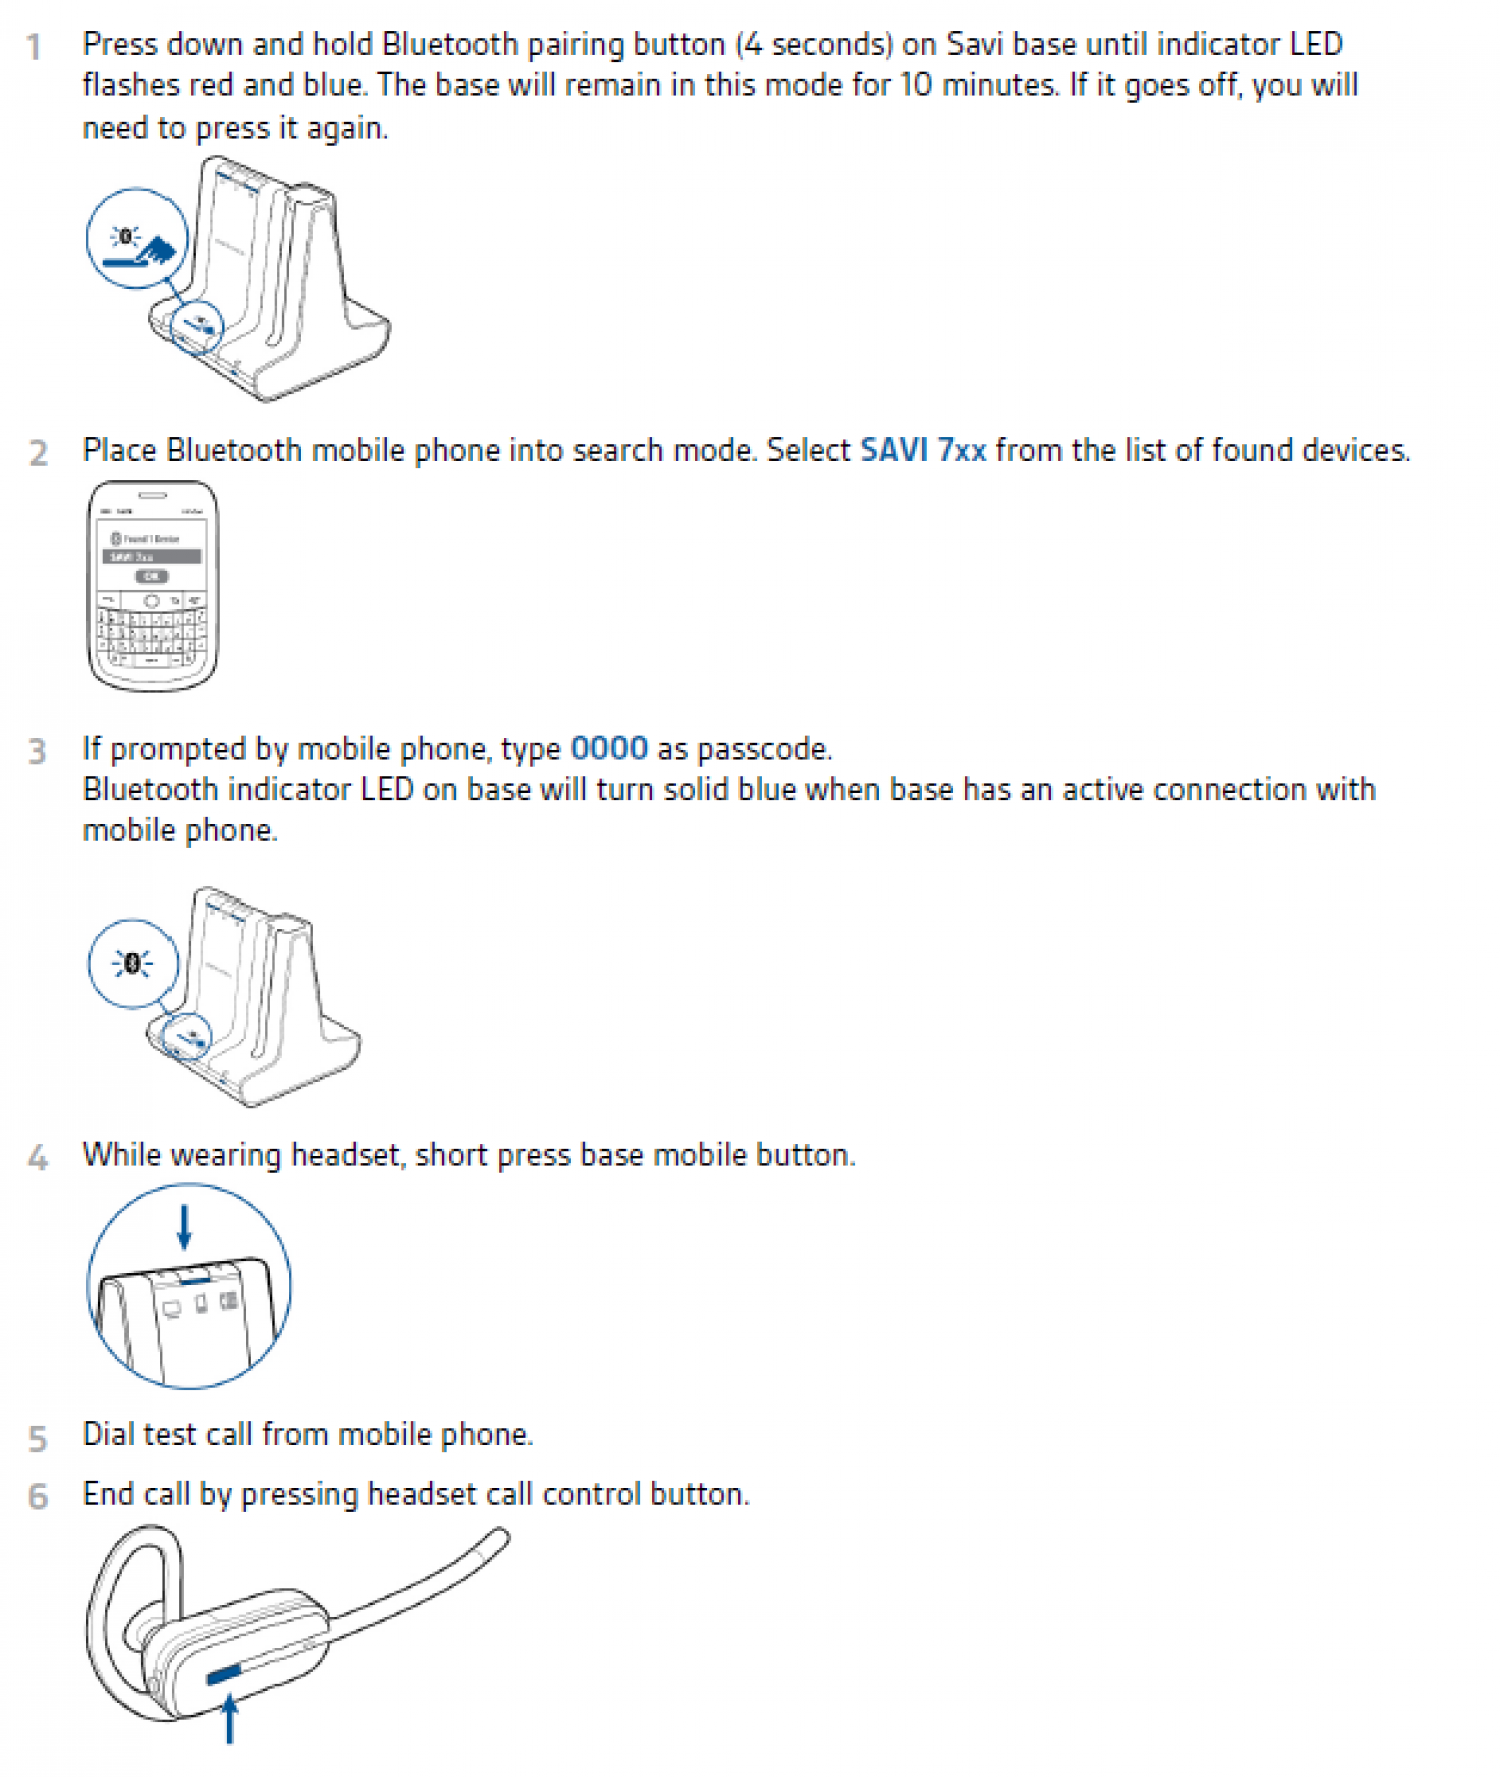 Setting up Plantronics W740 Wireless Headset Infographic